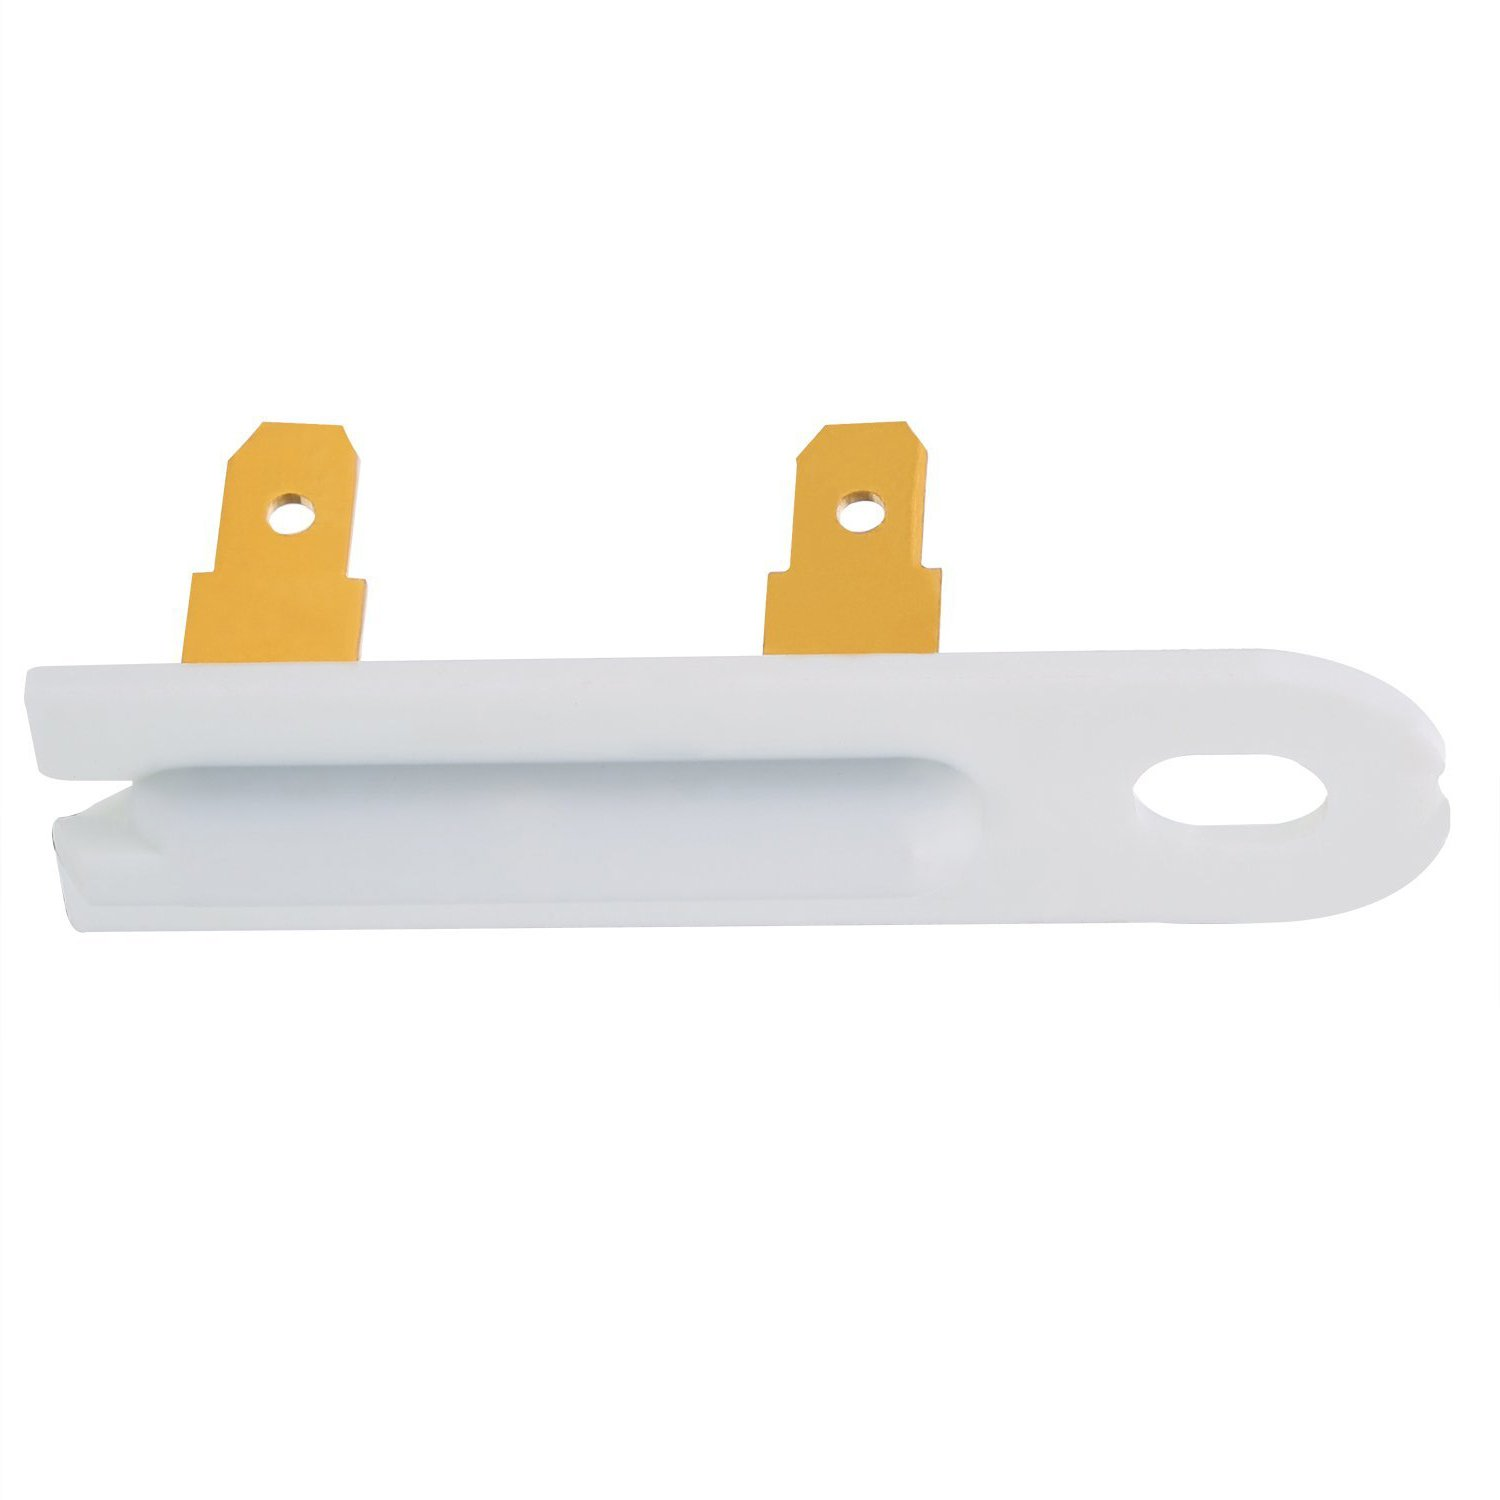 Amazon.com: 3392519 Dryer Thermal Fuse Thermofuse Replacement Part  Compatible for Whirlpool, Kenmore, KitchenAid, Roper,Admiral, Estate, Inglis,  Crosley, ...